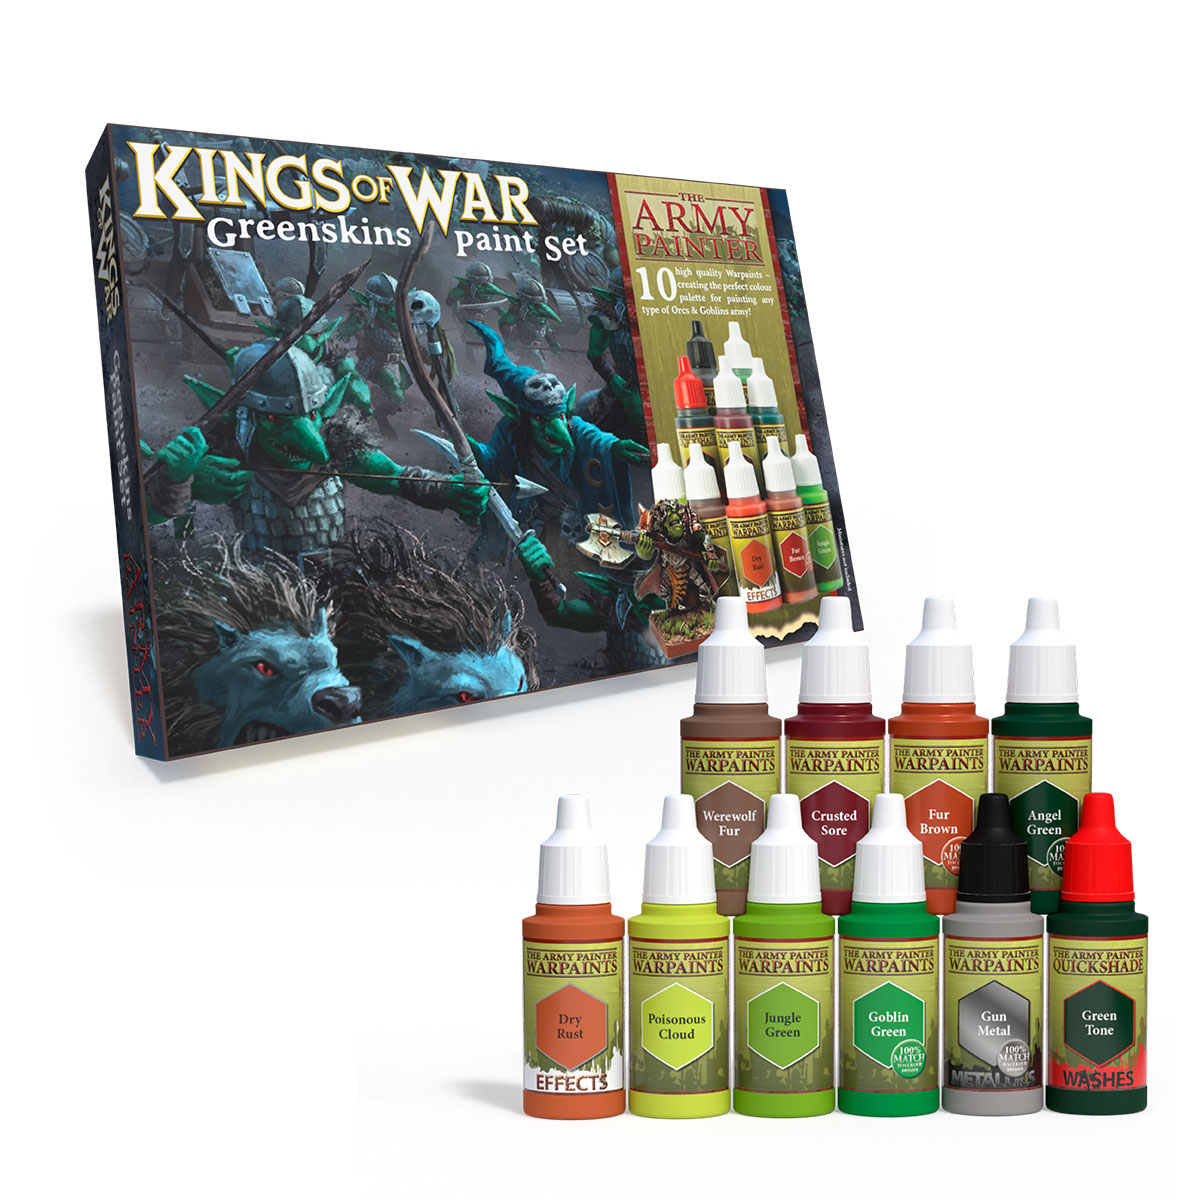 Army Painter Warpaints Kings of War Greenskins paint set